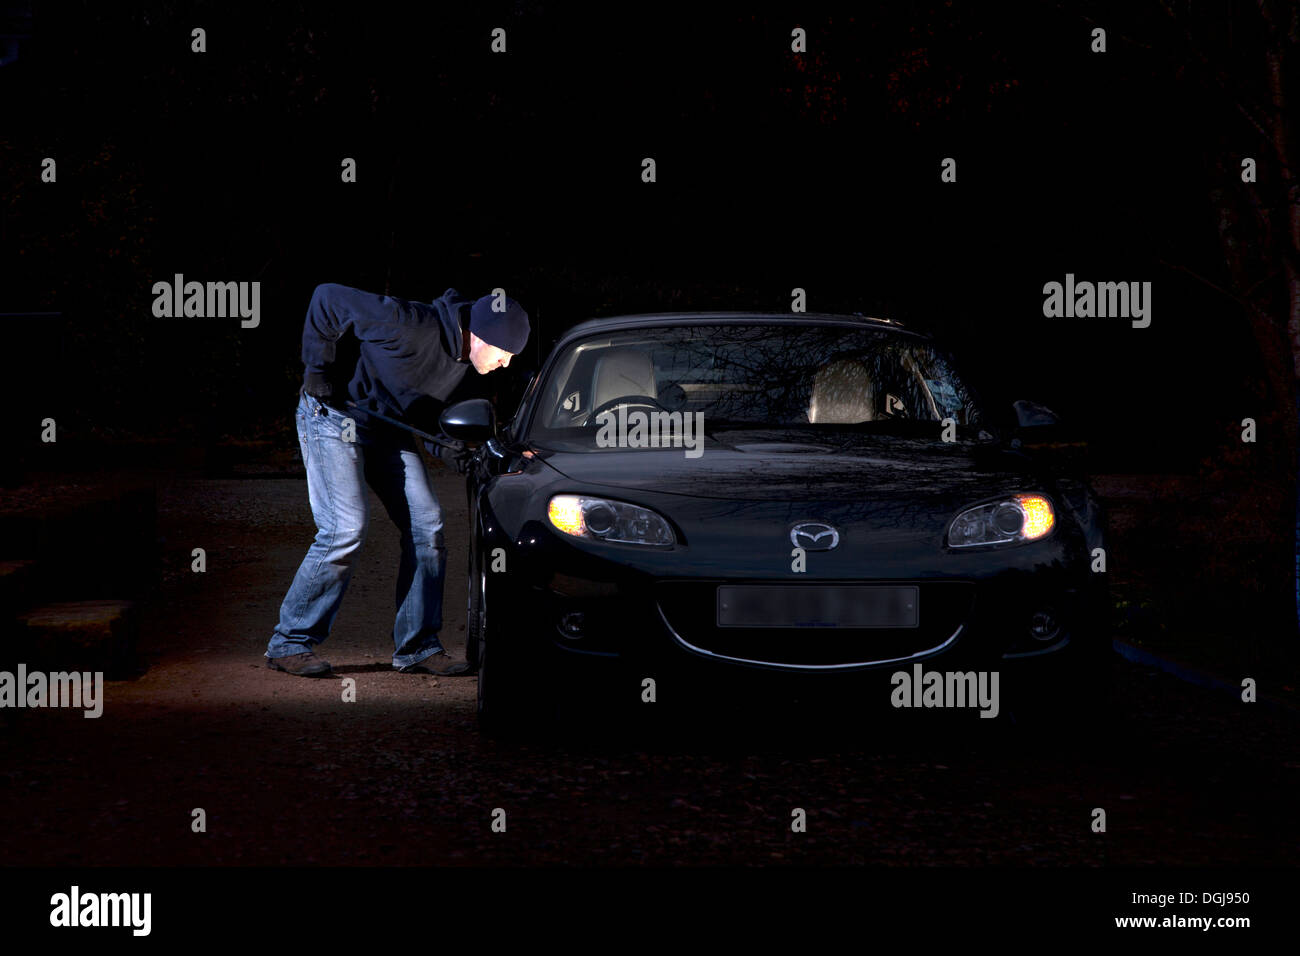 A man breaking into a parked car at night. Stock Photo